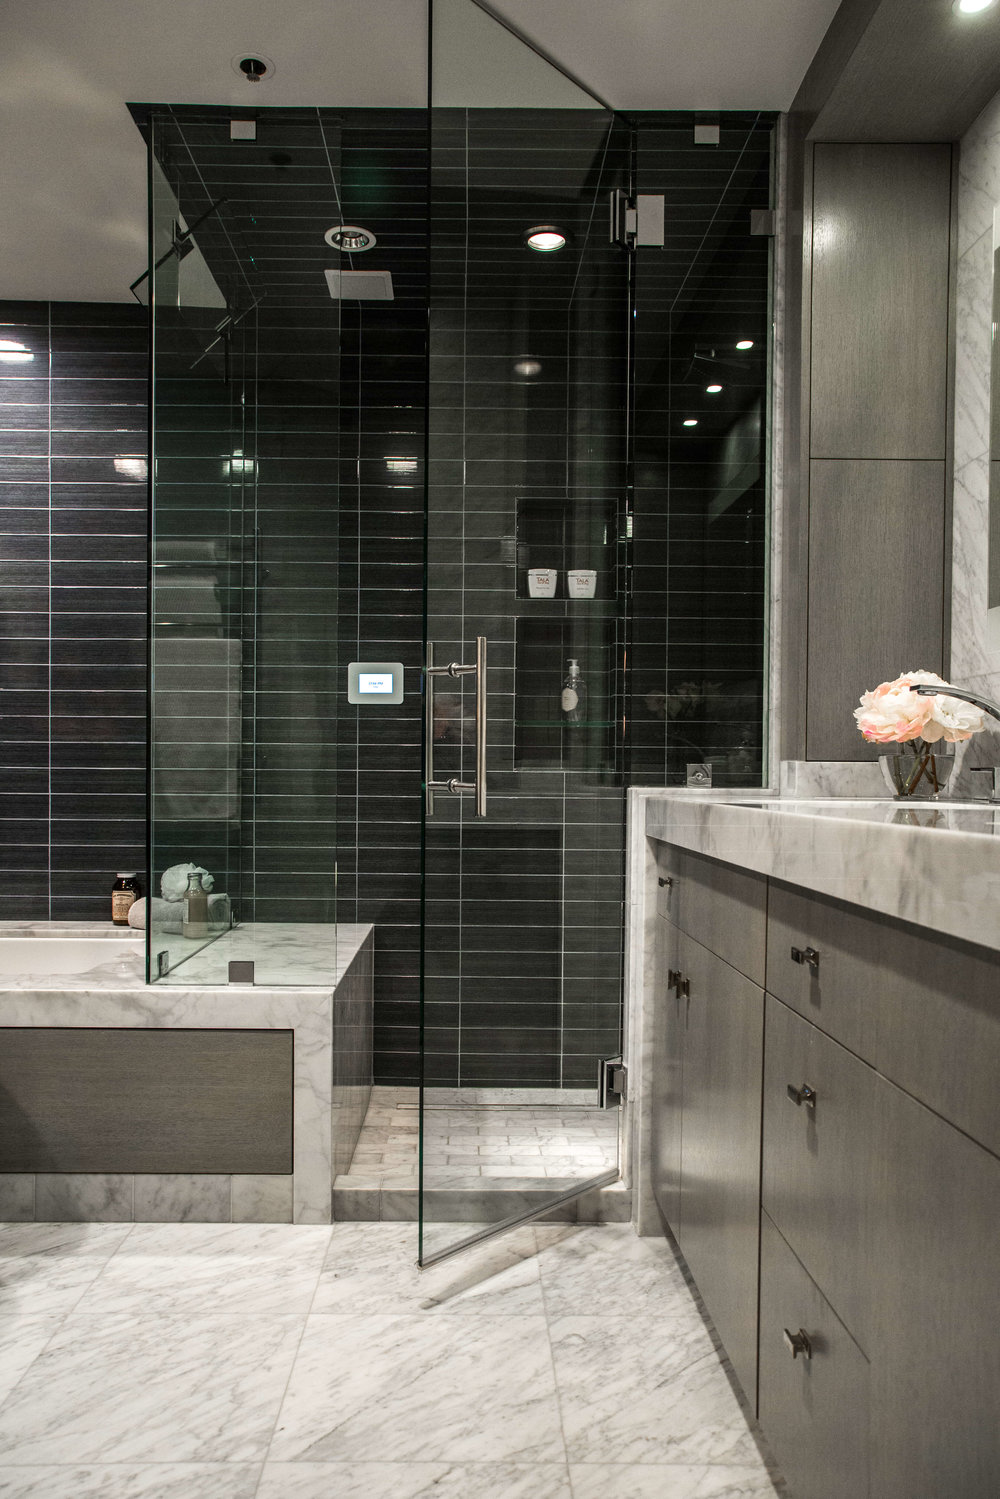 25 Beautiful Shower Niches For Your Beautiful Bath Products | Designer:  Lori Gilder , Image via:  Mr. Steam KBIS 2018